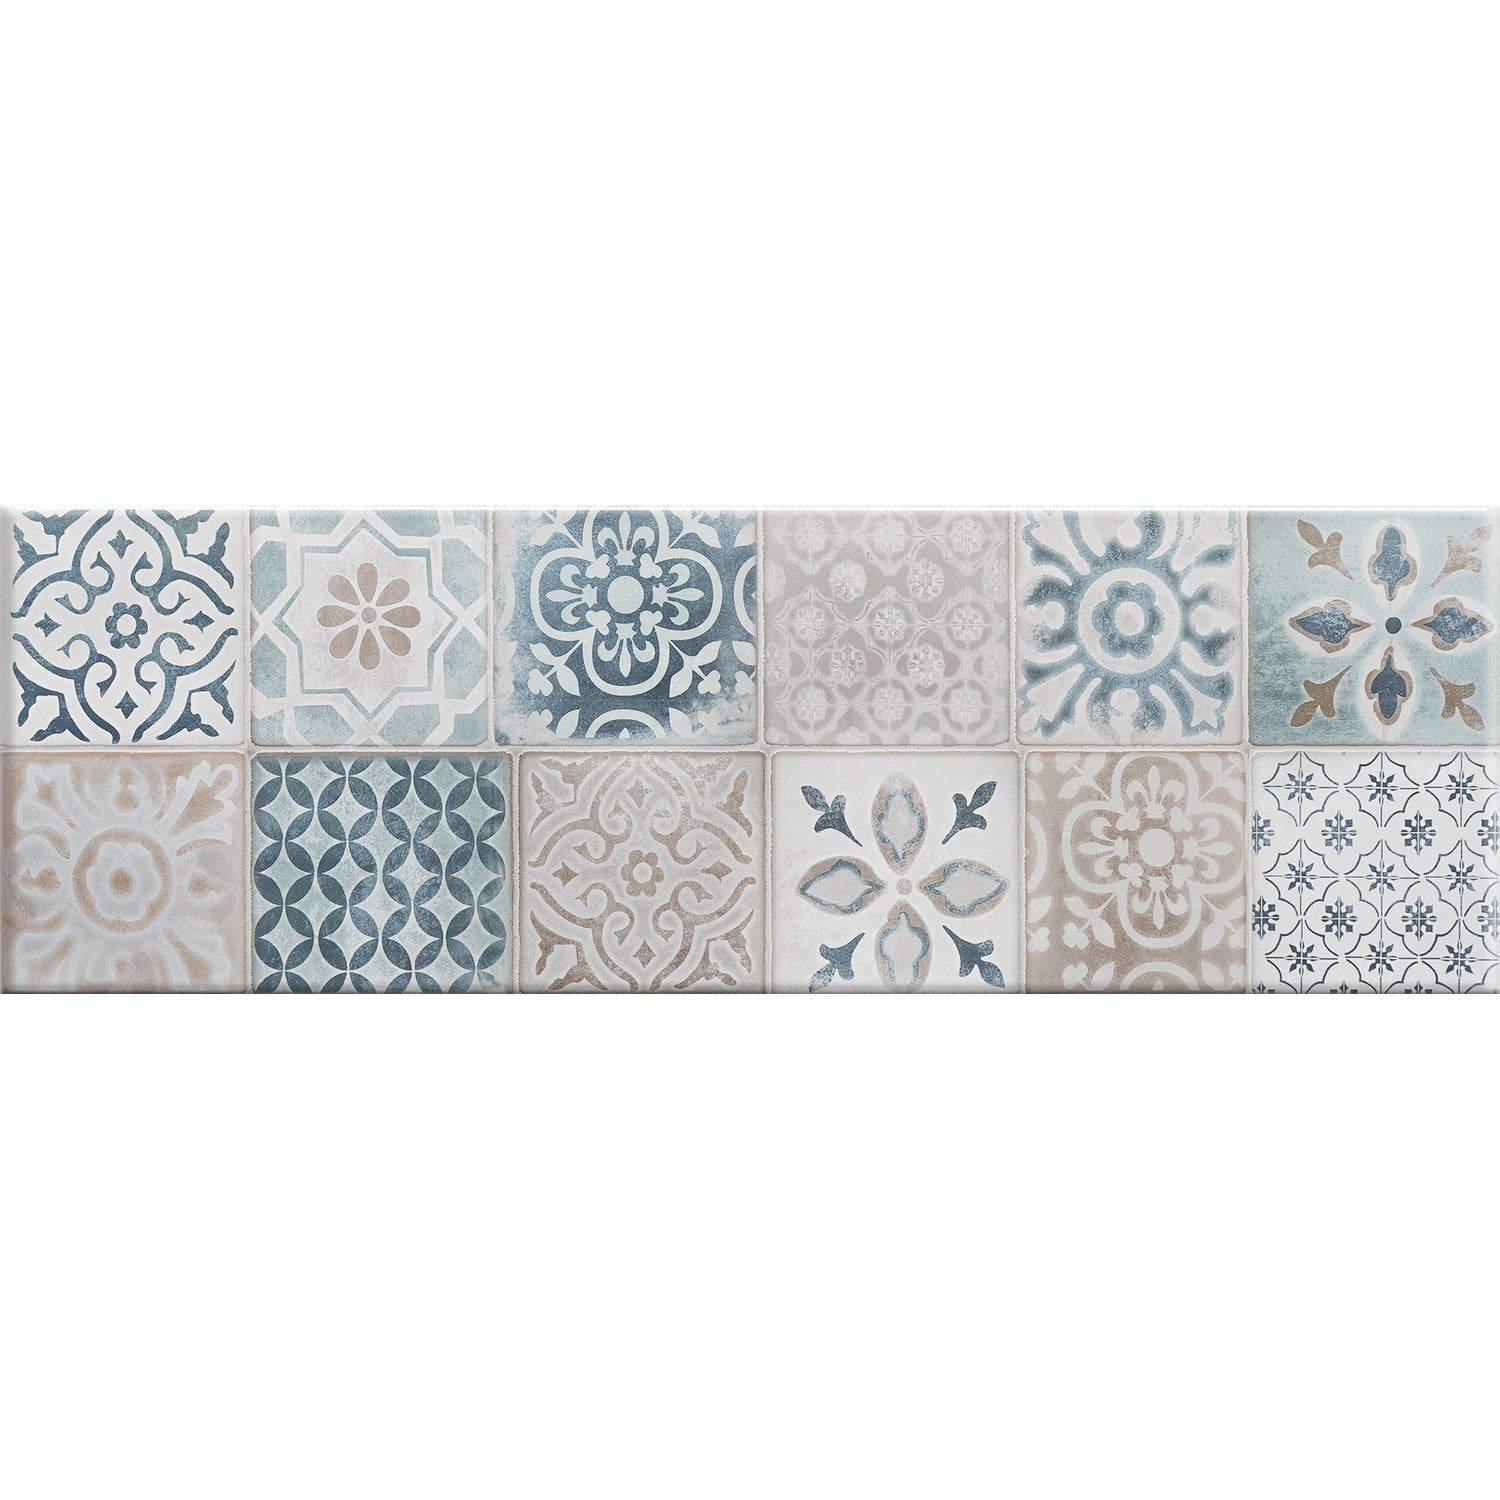 Fa ence mur blanc et bleu decor haussmann carreau ciment for Faience decorative murale